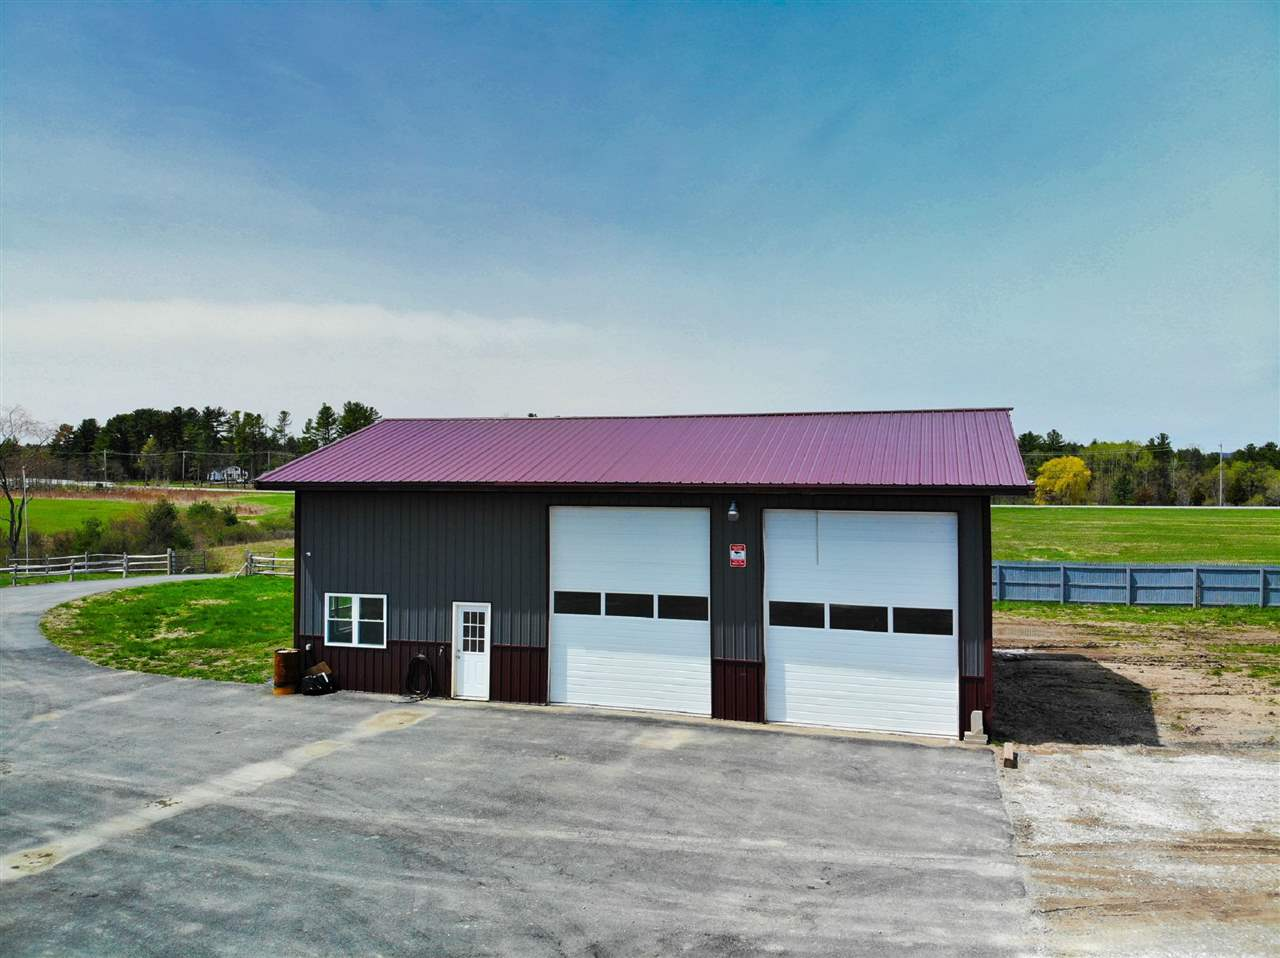 4202 State Route 4 In Hudson Falls Ny Listed For 175 000